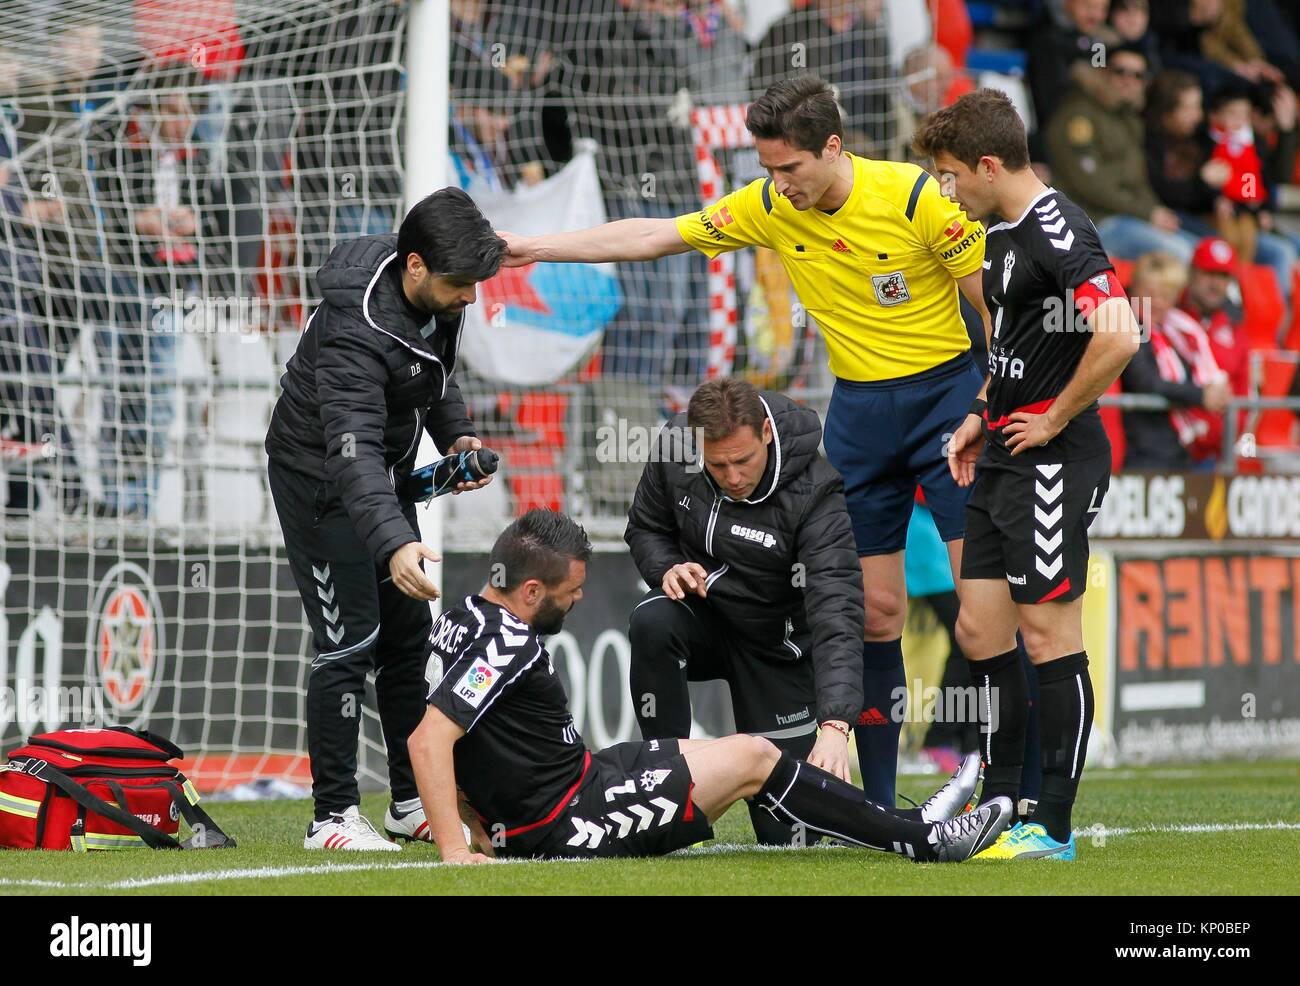 Football match League second division professional football. Anxo Carro played at the stadium, Lugo vs Albacete - Stock Image